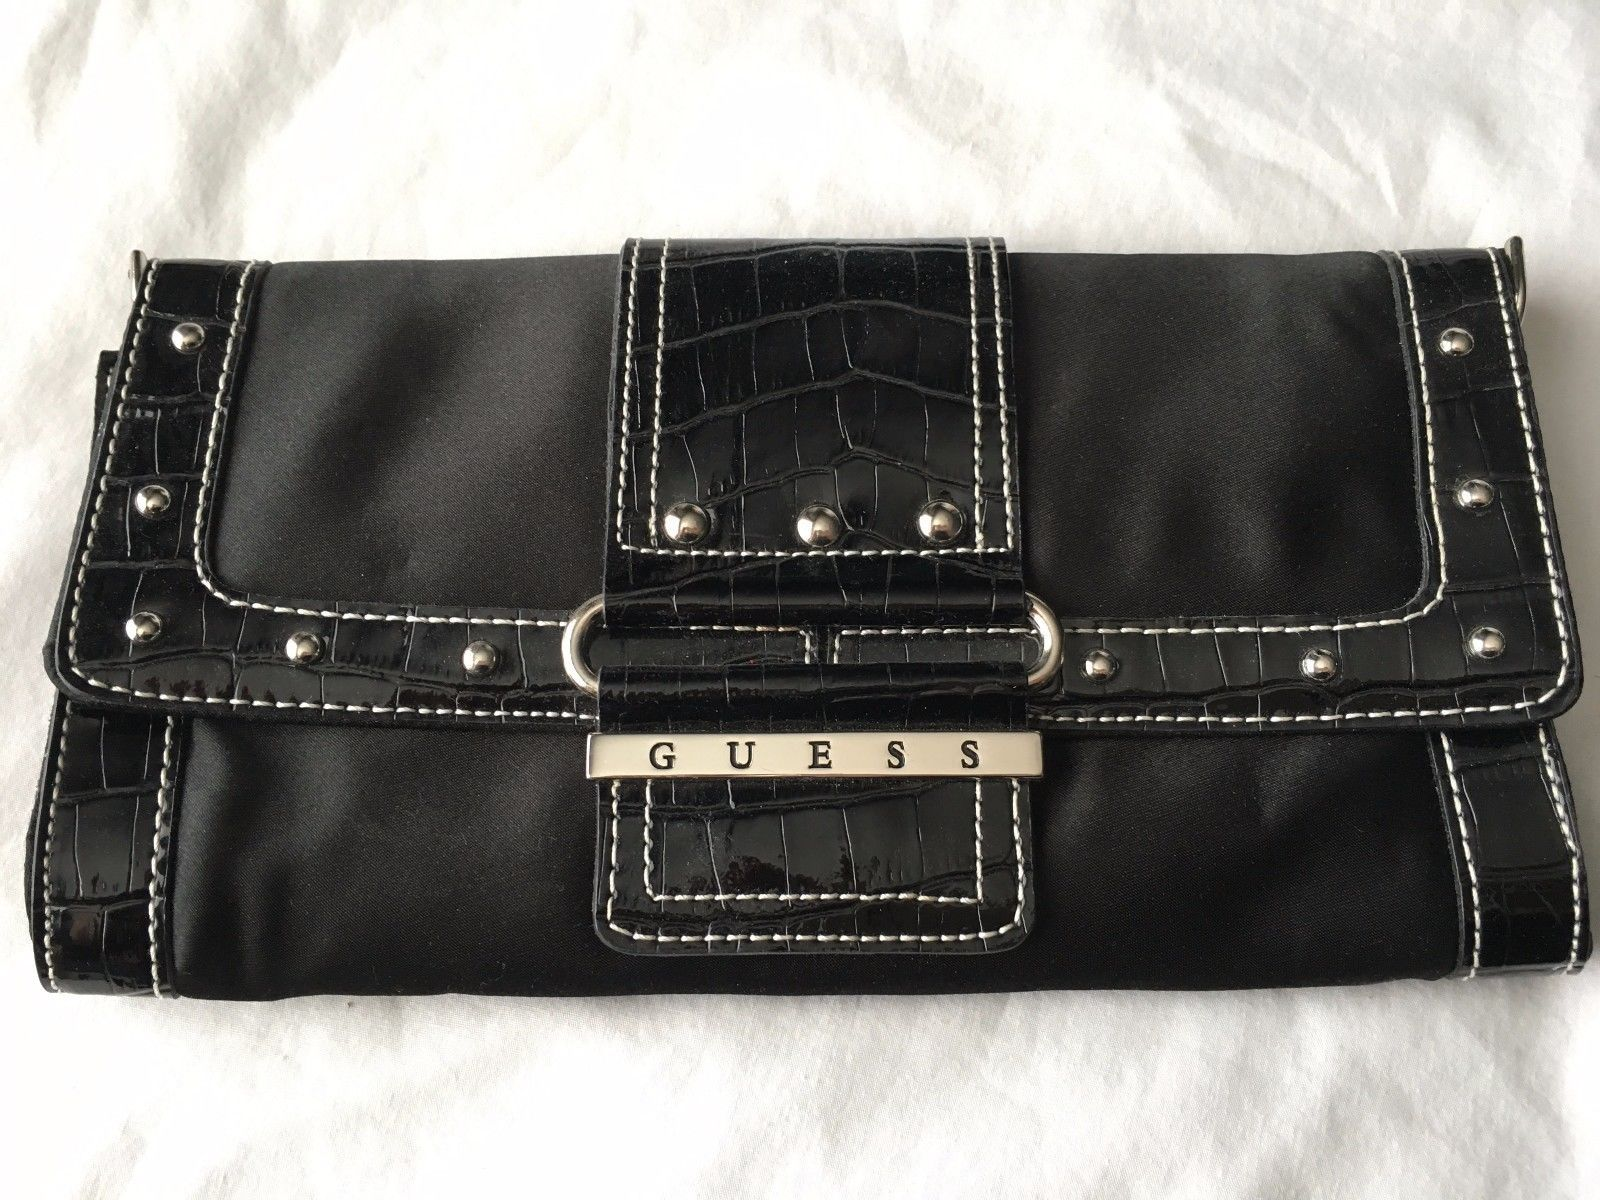 Leather Guess Black Satin Patent Trim Clutch Purse